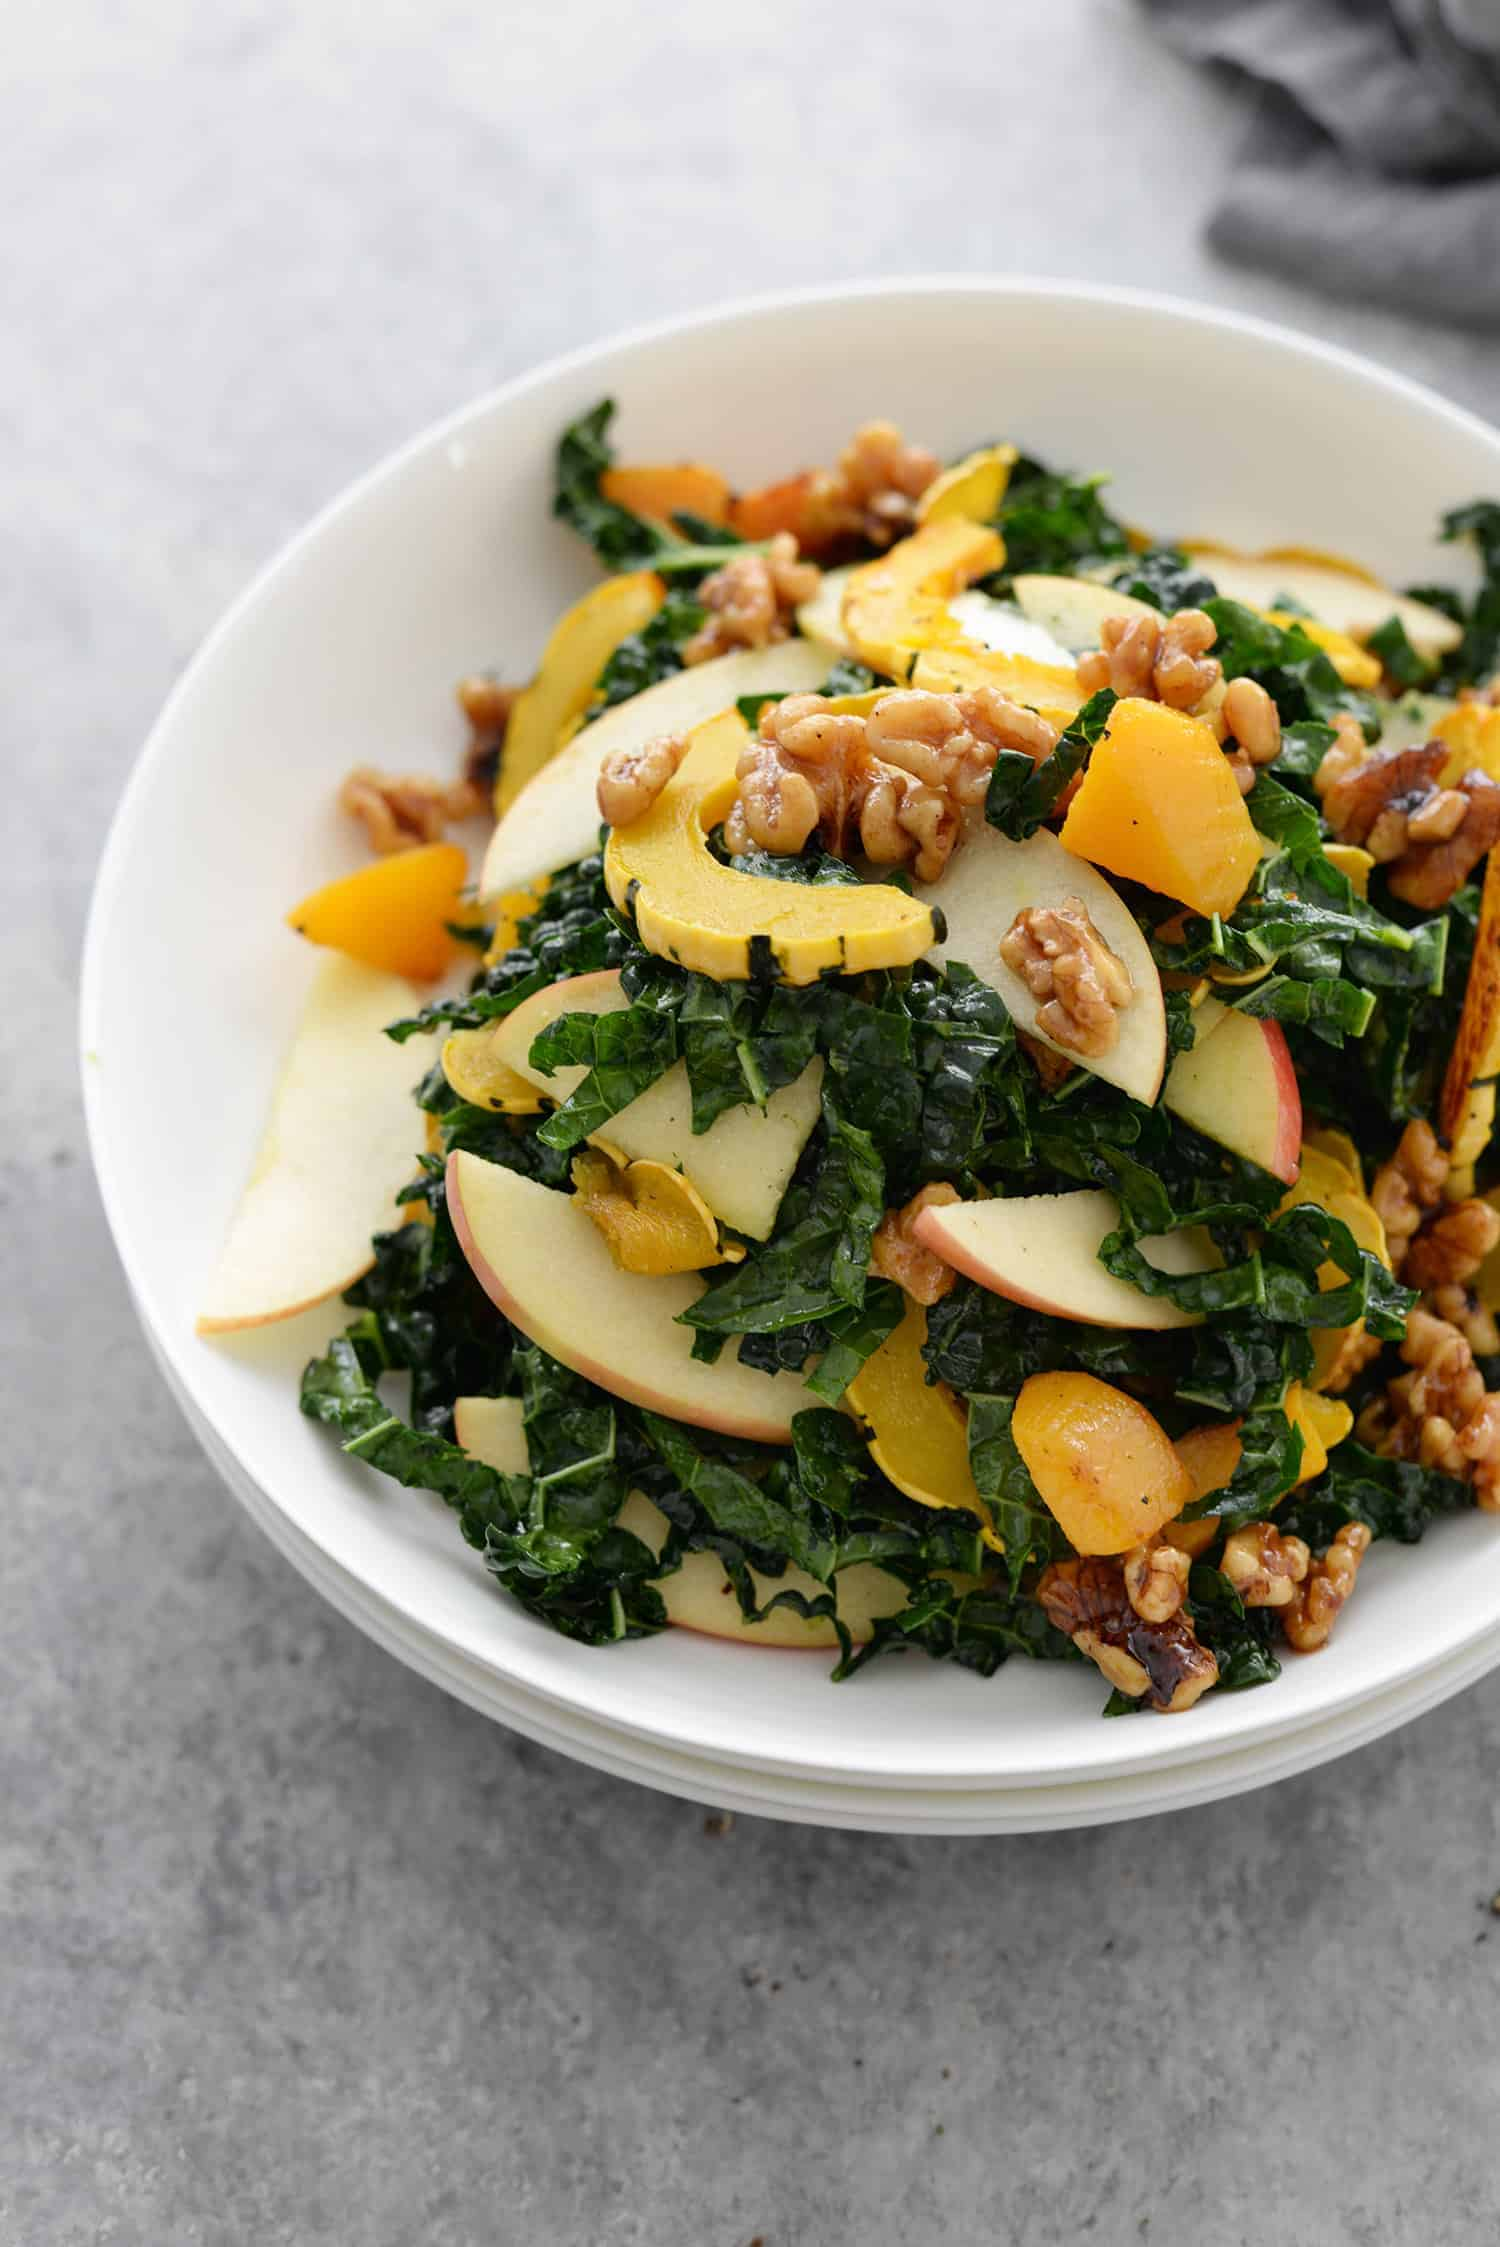 Autumn Squash, Kale and Apple Salad. You've gotta try this Thanksgiving or Holiday salad! Kale, roasted squash, apple and candied walnuts in a maple-cinnamon dressing. #vegan and #glutenfree | www.delishknowledge.com